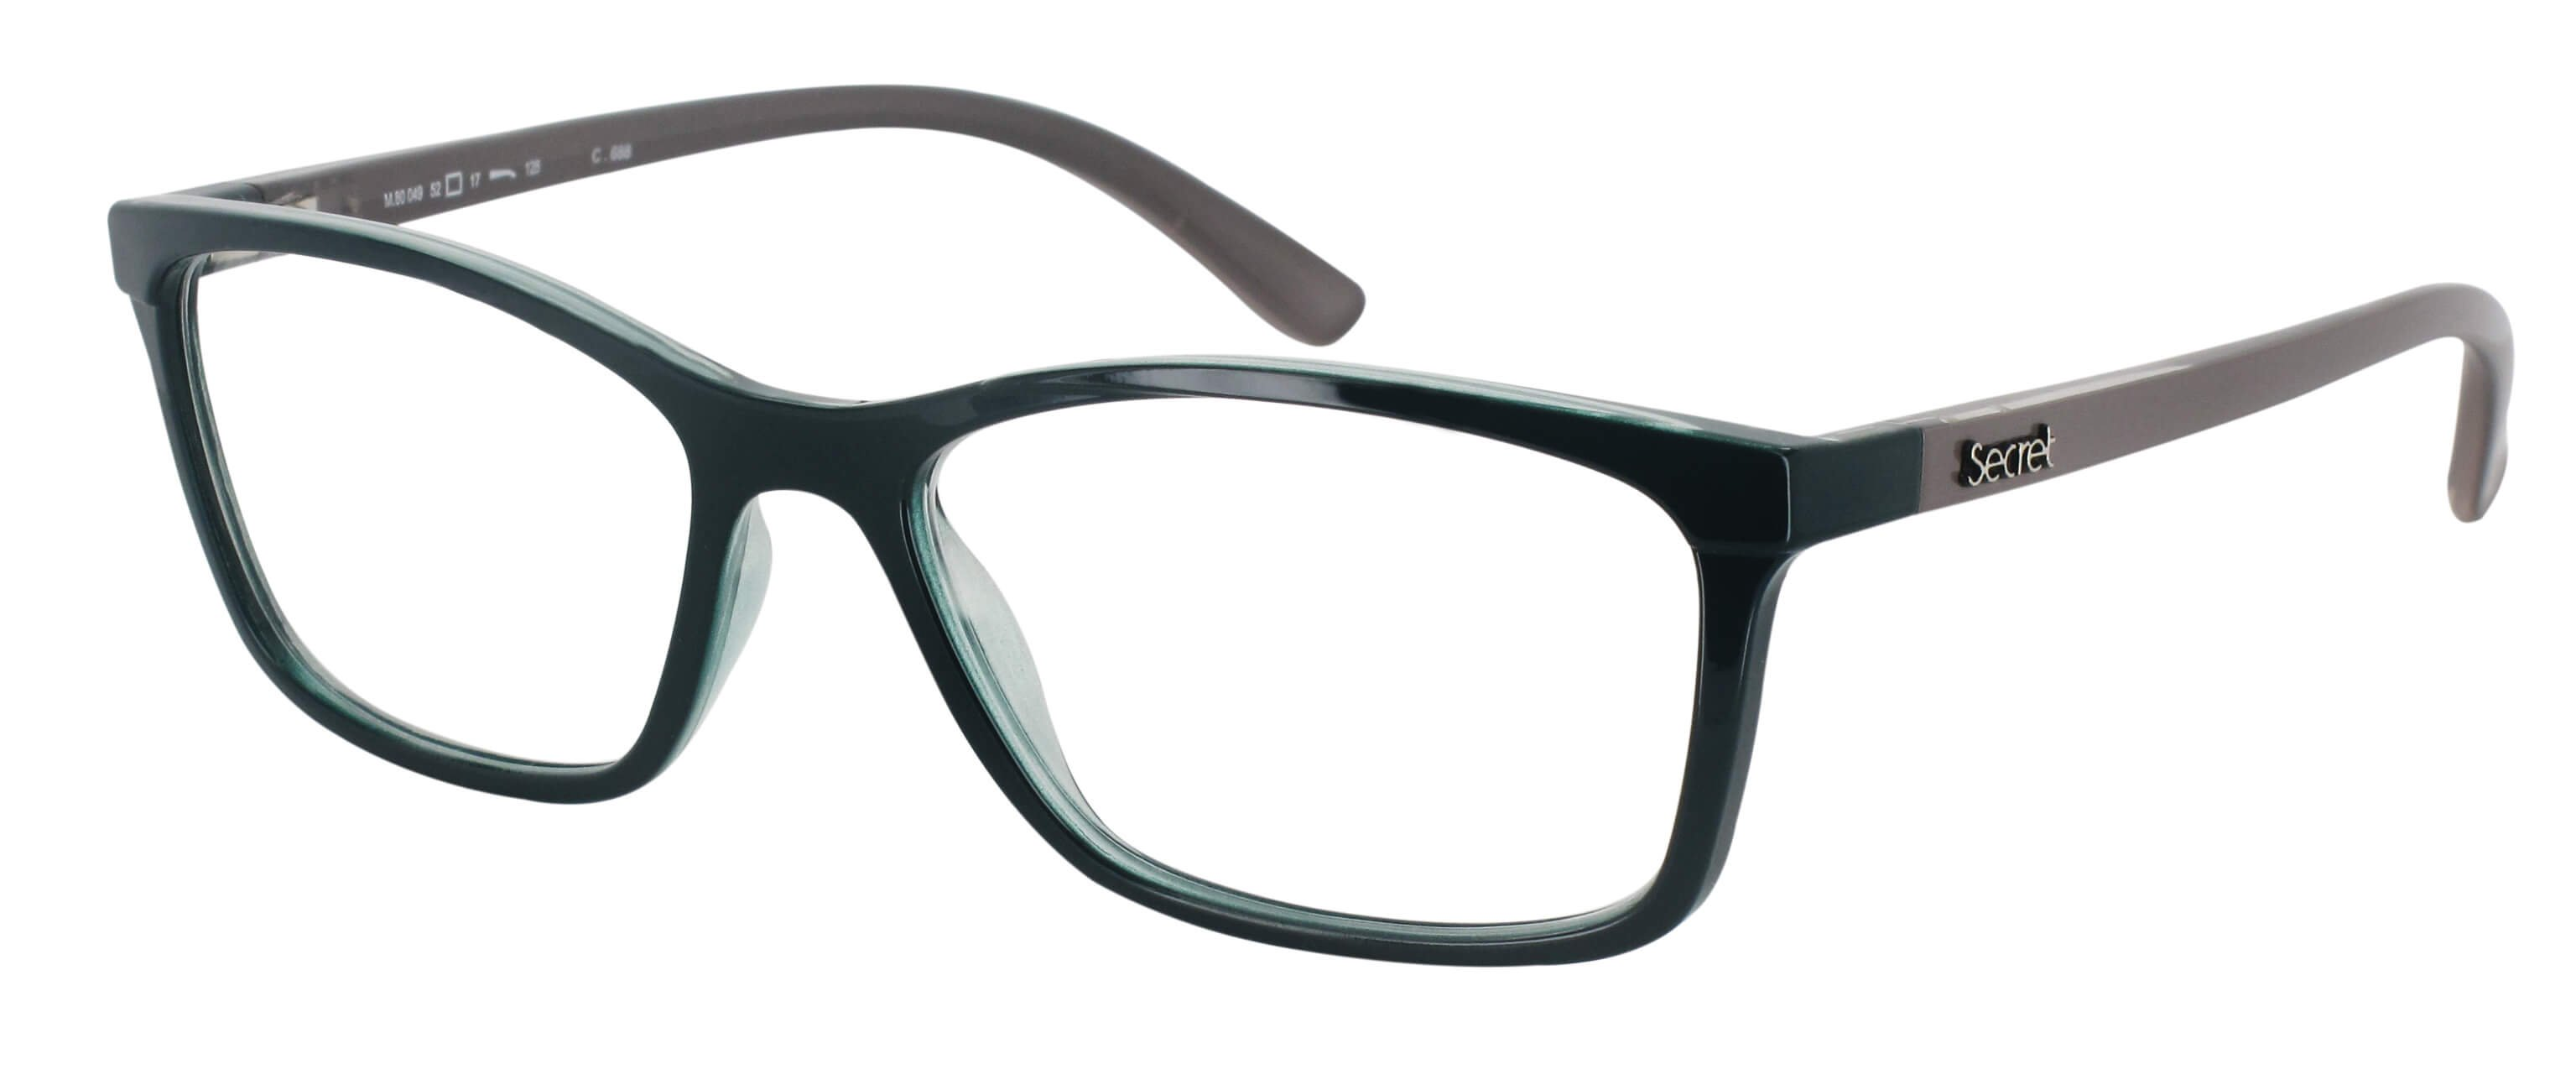 SECRET GRILAMID 80049 DARK GREEN/GRAY